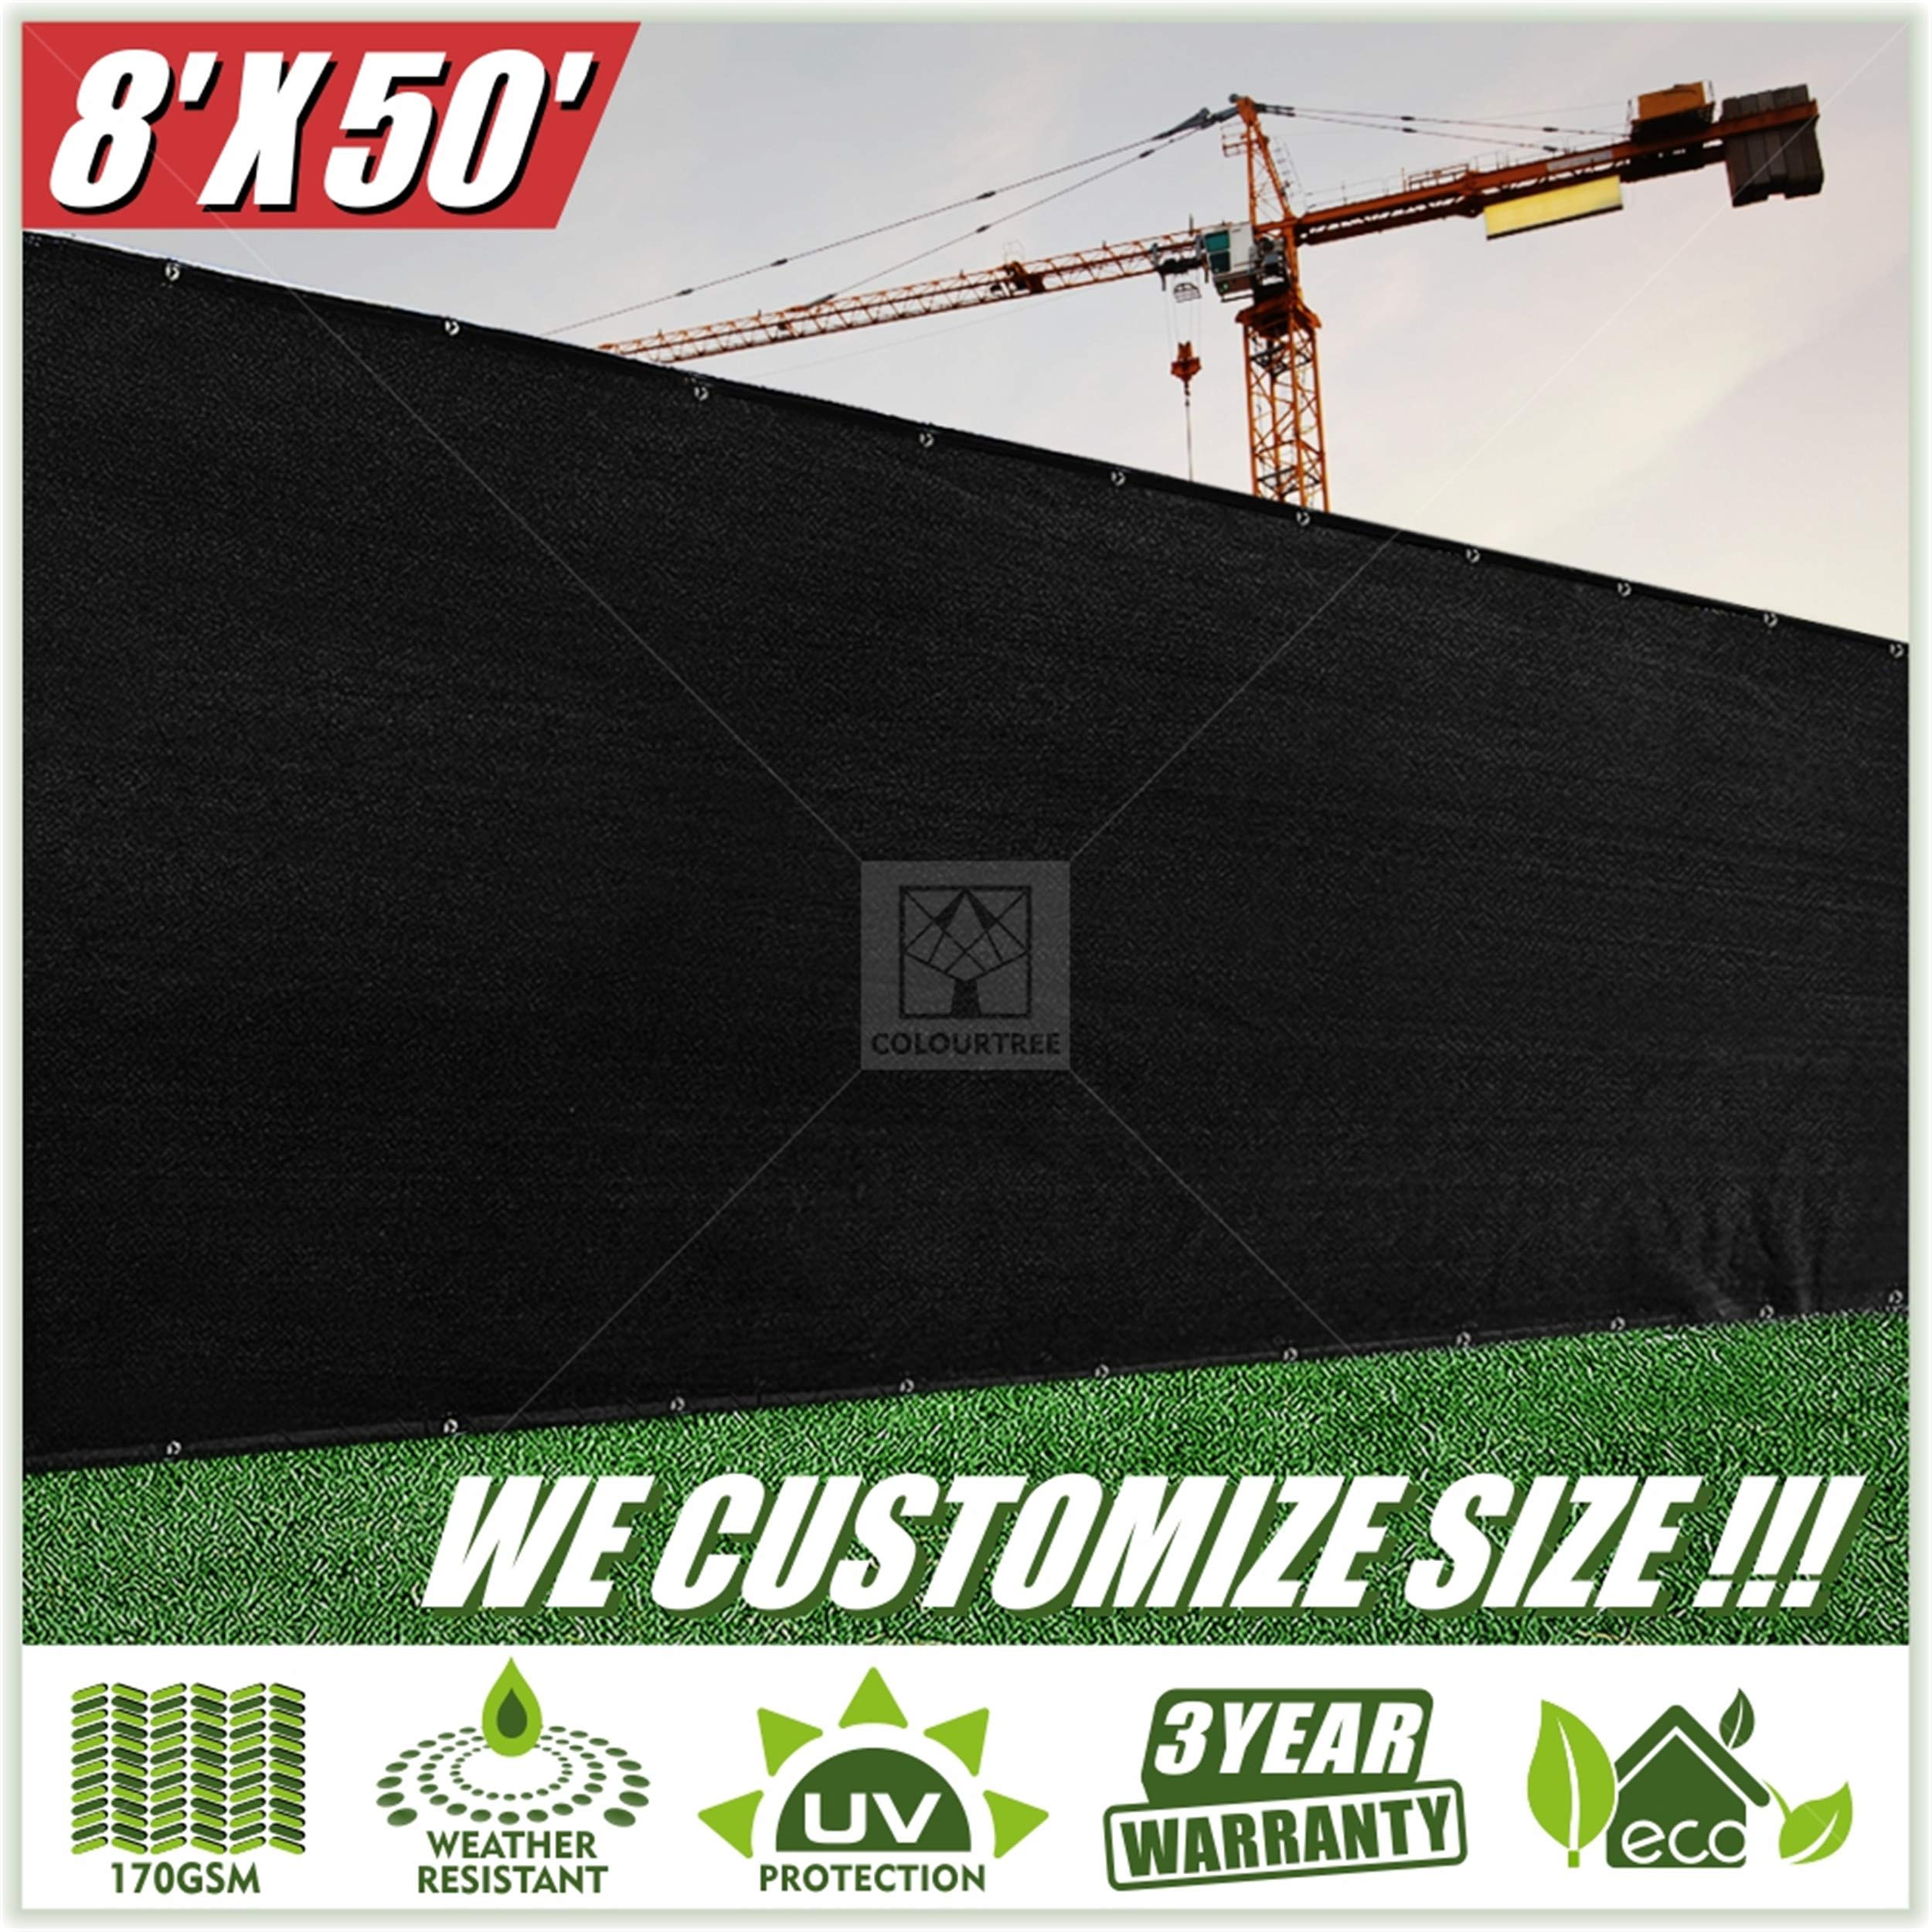 ColourTree 8' x 50' Black Fence Privacy Screen Windscreen, Commercial Grade 170 GSM Heavy Duty, We Make Custom Size by ColourTree